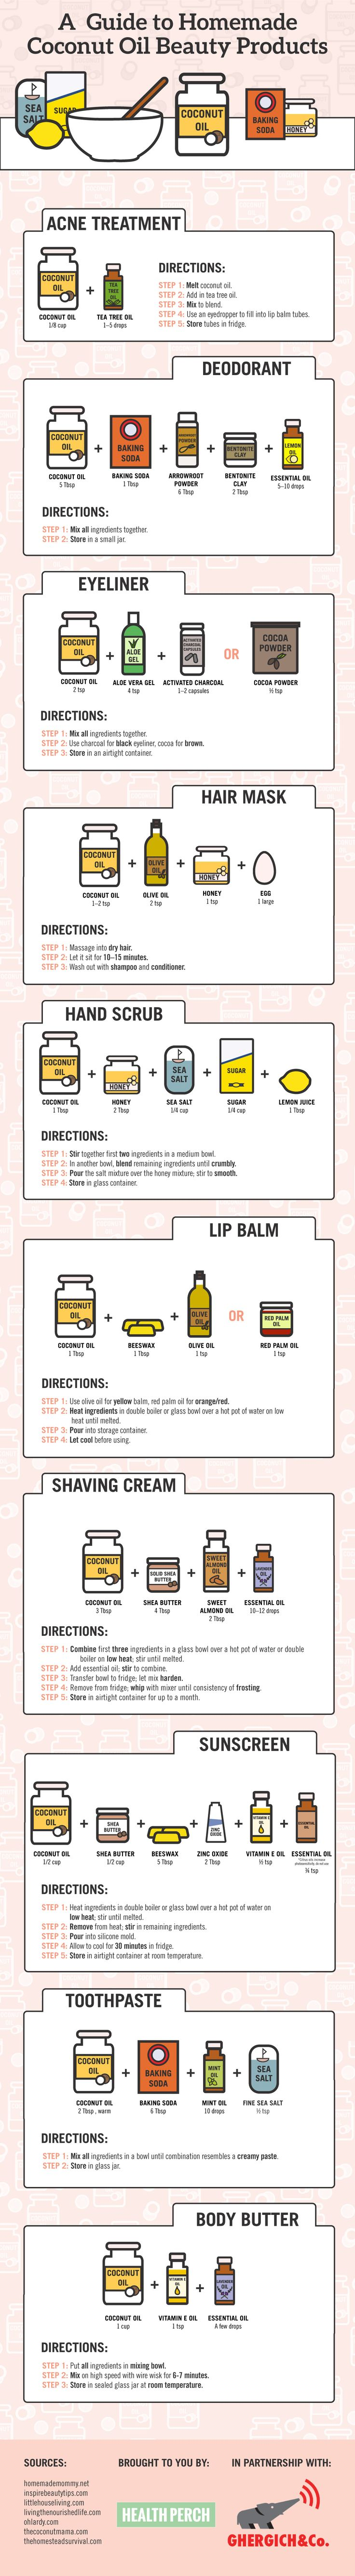 10 Recipes for Homemade Coconut Oil Beauty Products - Make Your Own Coconut Oil Beauty Products